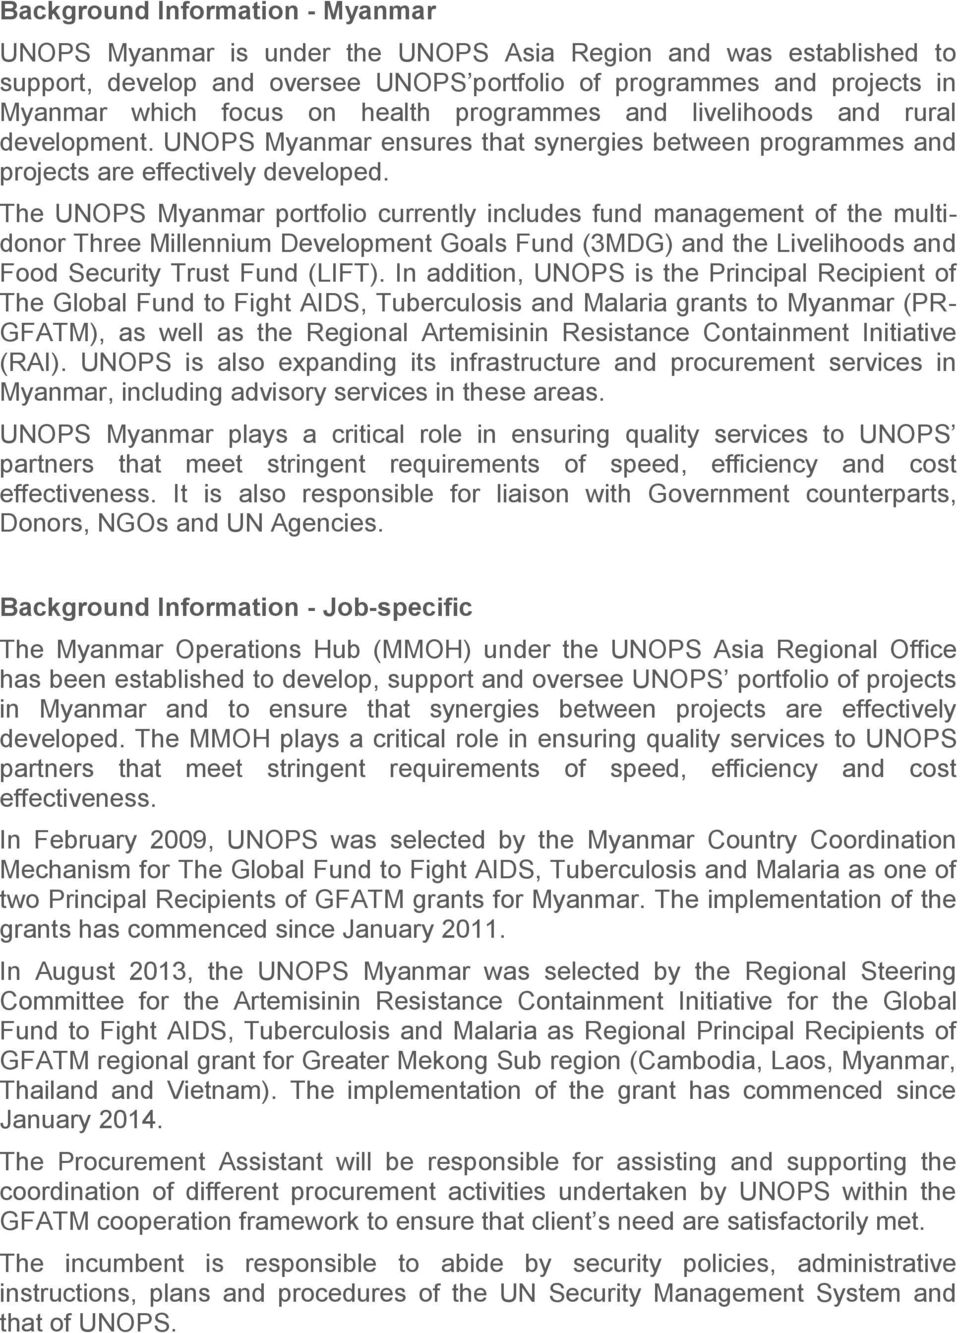 The UNOPS Myanmar portfolio currently includes fund management of the multidonor Three Millennium Development Goals Fund (3MDG) and the Livelihoods and Food Security Trust Fund (LIFT).